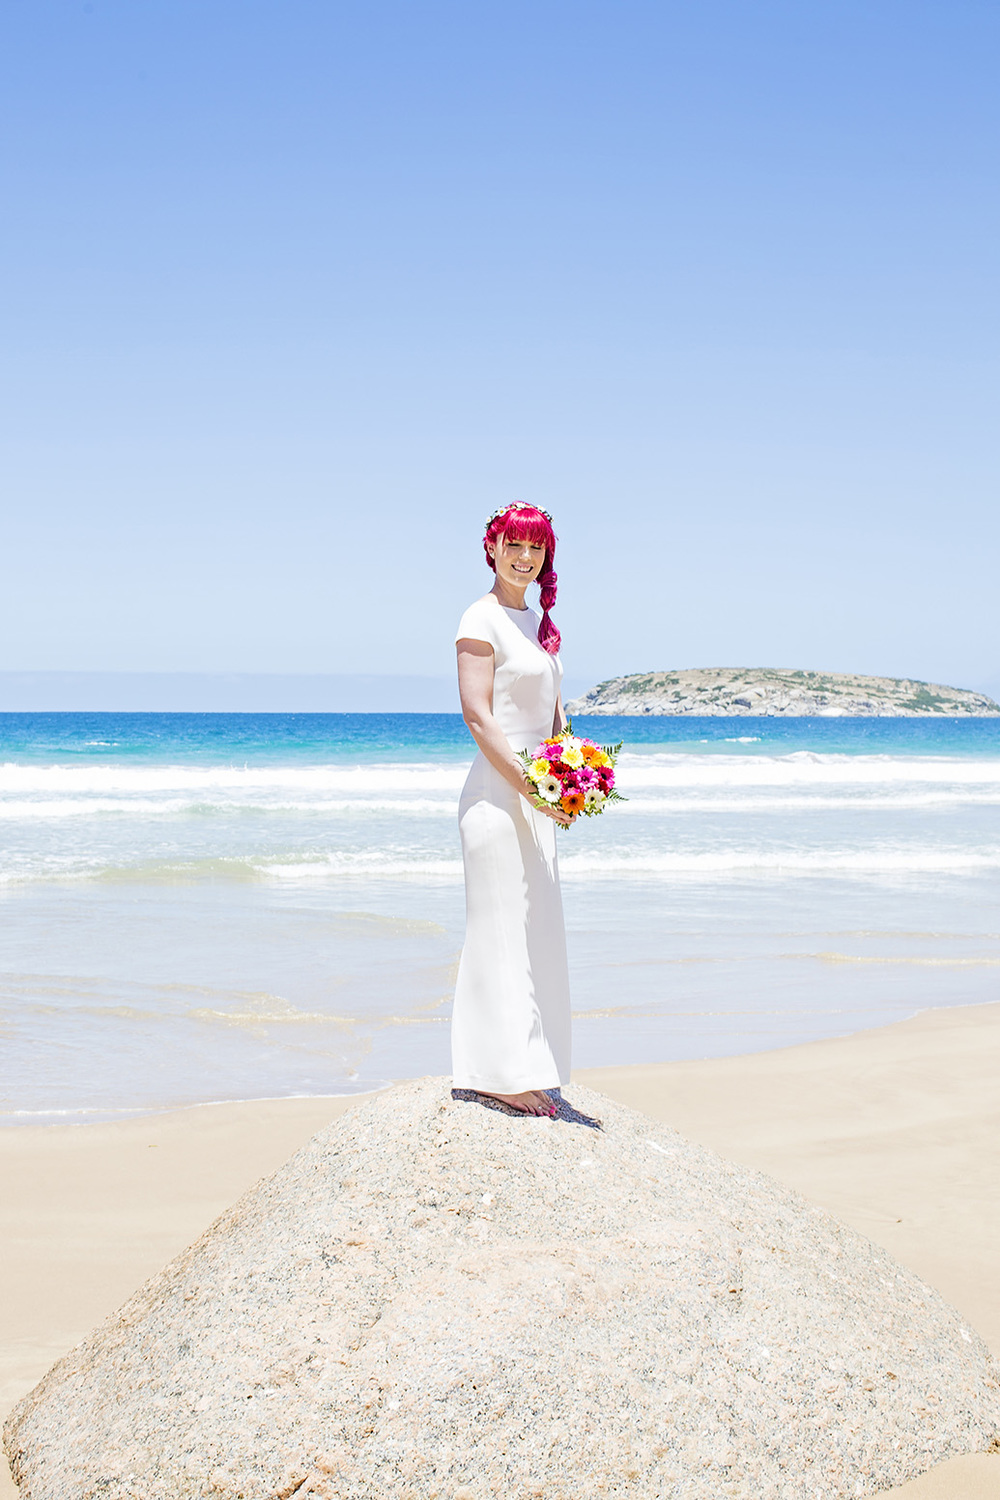 Victor Harbour Wedding Photography 019 bride portrait beach.jpg